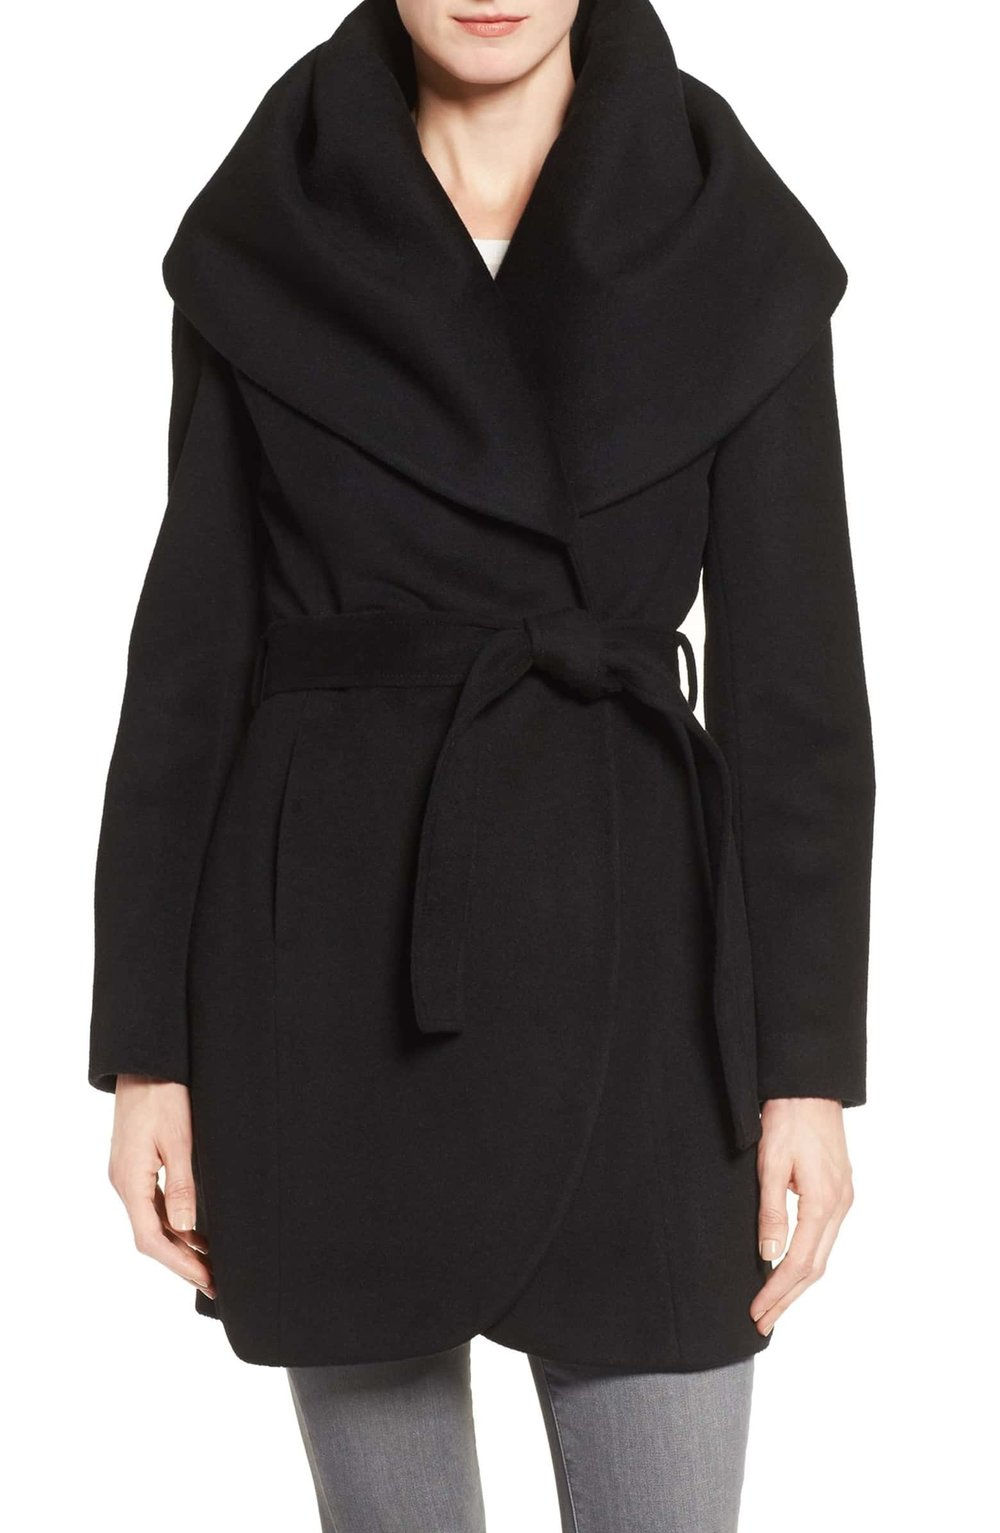 Nordstrom Black Friday Sale - Nordstrom's Black Friday sale is filled with so many good things! There are hundreds of pages of clothes, shoes, home and more at up to 60% off! This T Tahari Wool Blend Belted Wrap Coat is so stunning — very Meghan Markle, if you will. Other favorites are the Topshop Moto Jacket (a real score at $52!), and Barefoot Dreams Cozychic Socks for only $10.05 (the perfect stocking stuffer!). If you have clothes on your list for yourself or others this is not a sale to be missed!